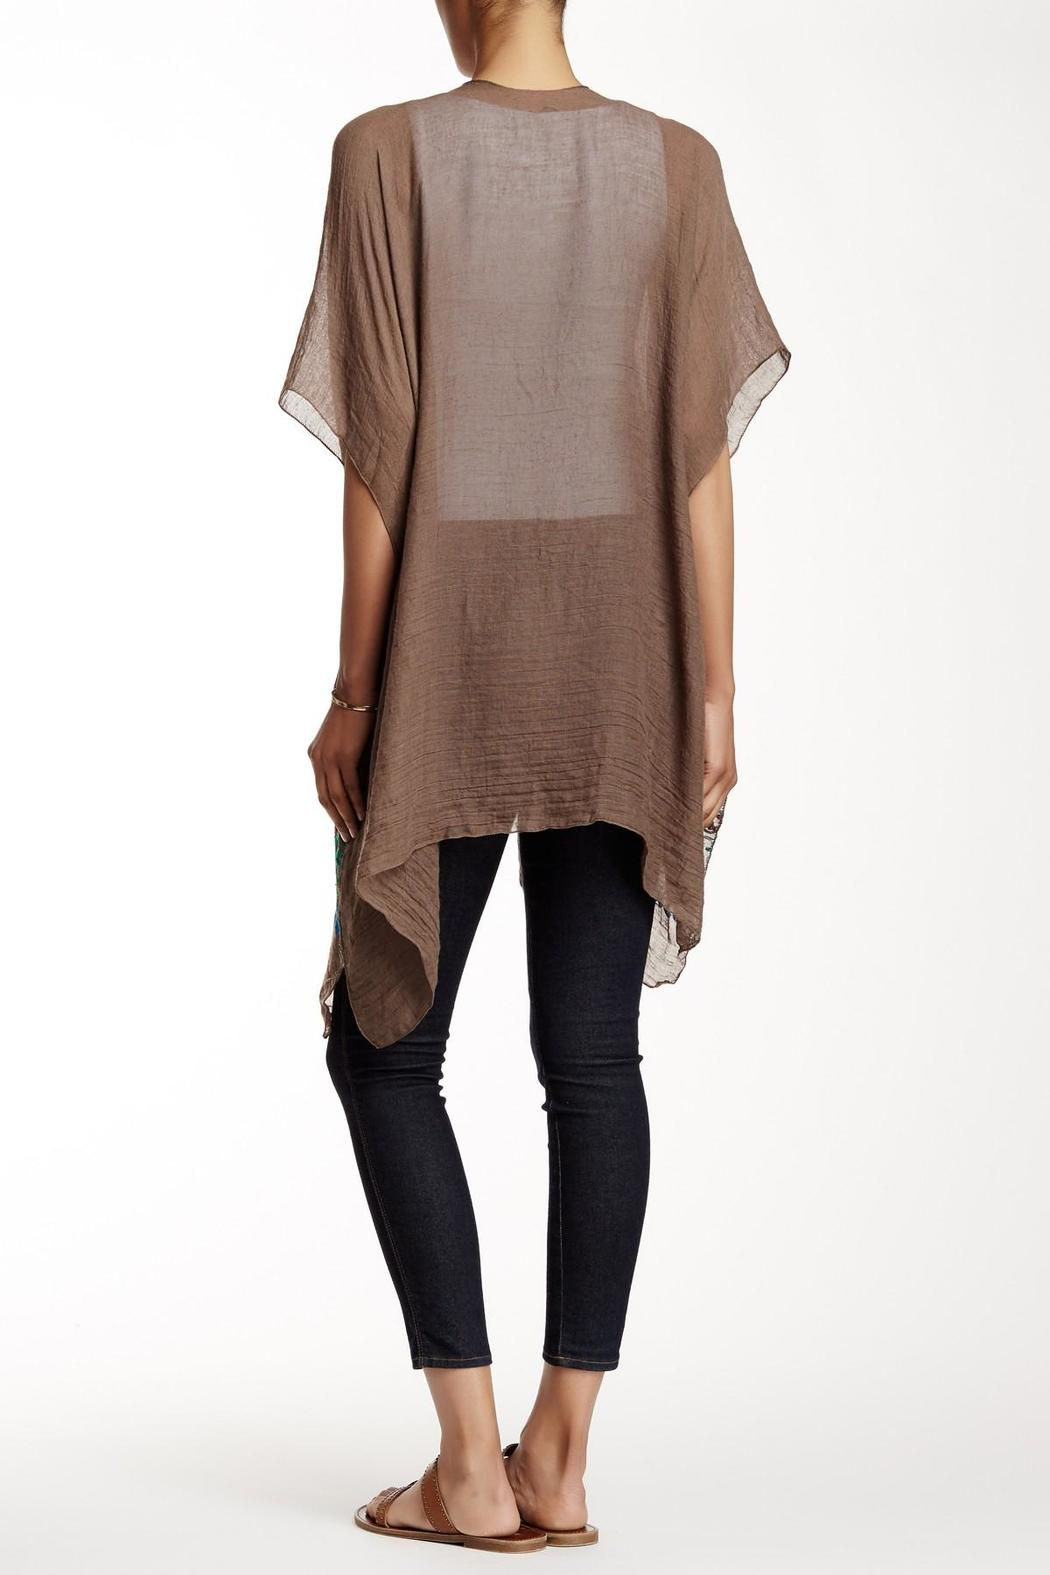 Rikka Sheer Brown Long Cardigan - Front Full Image